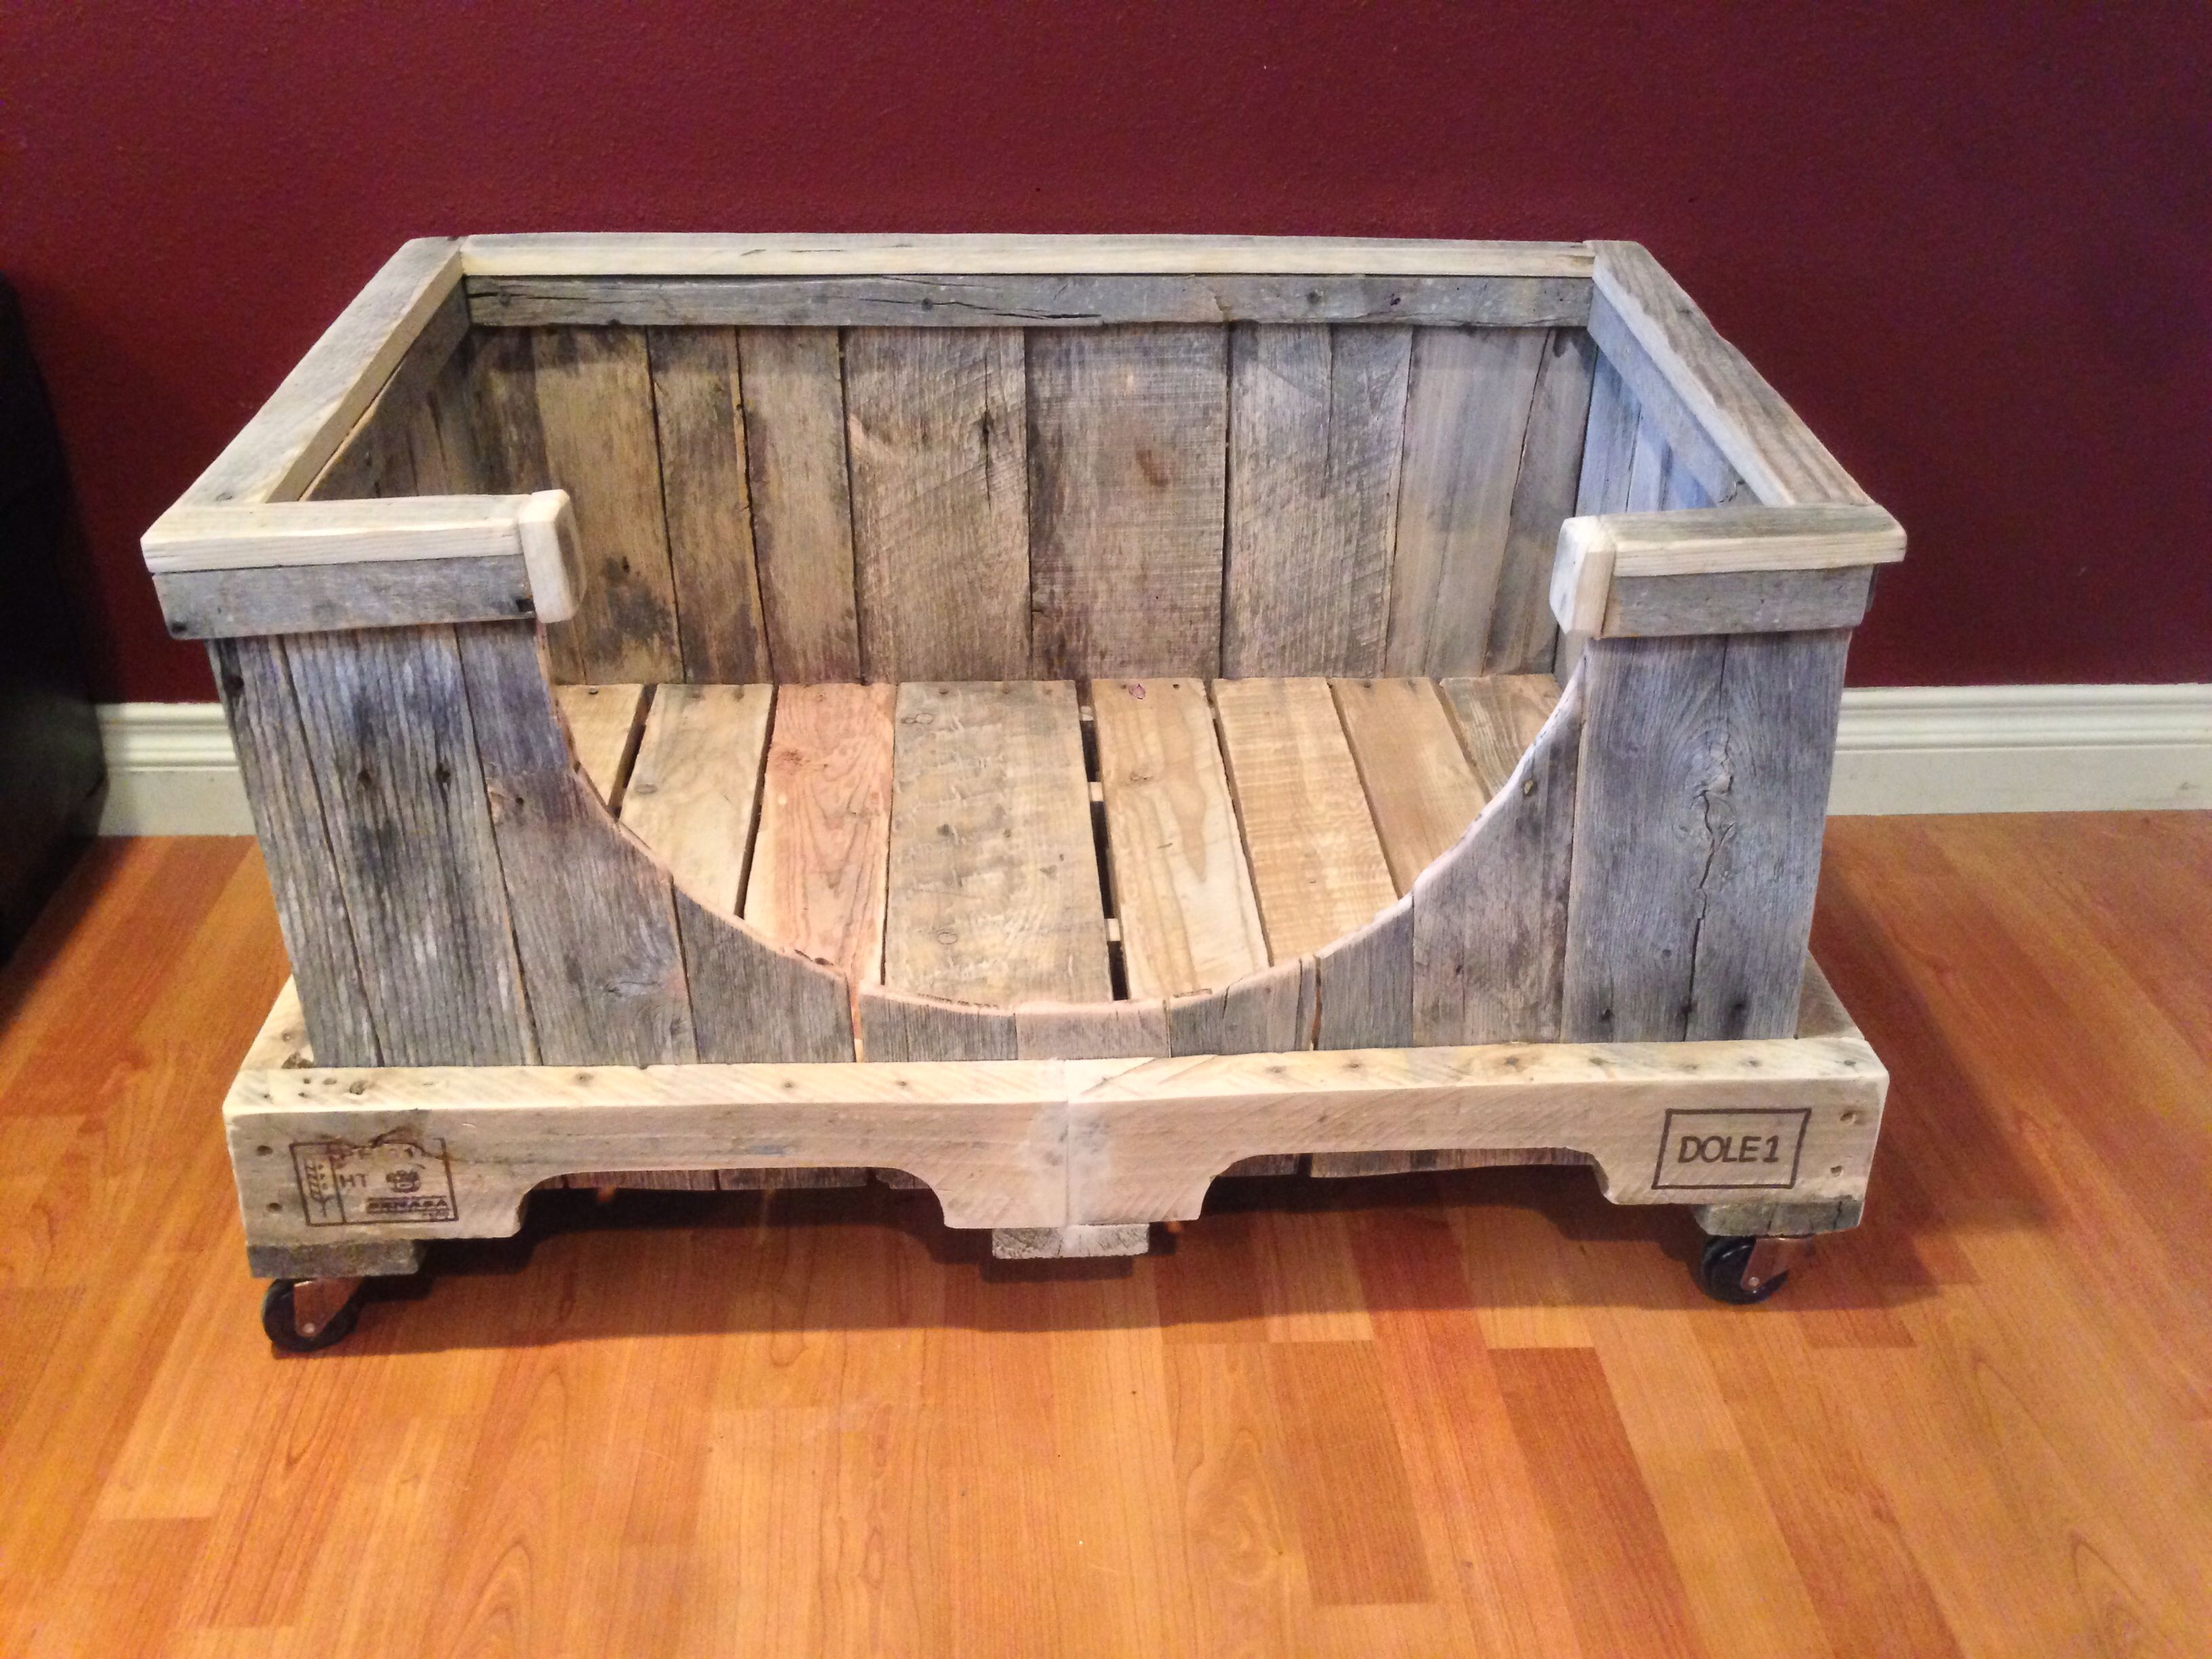 Exceptional Pallet Dog Bed Frame I Made From 100% Pallets. I Put Wheels On The